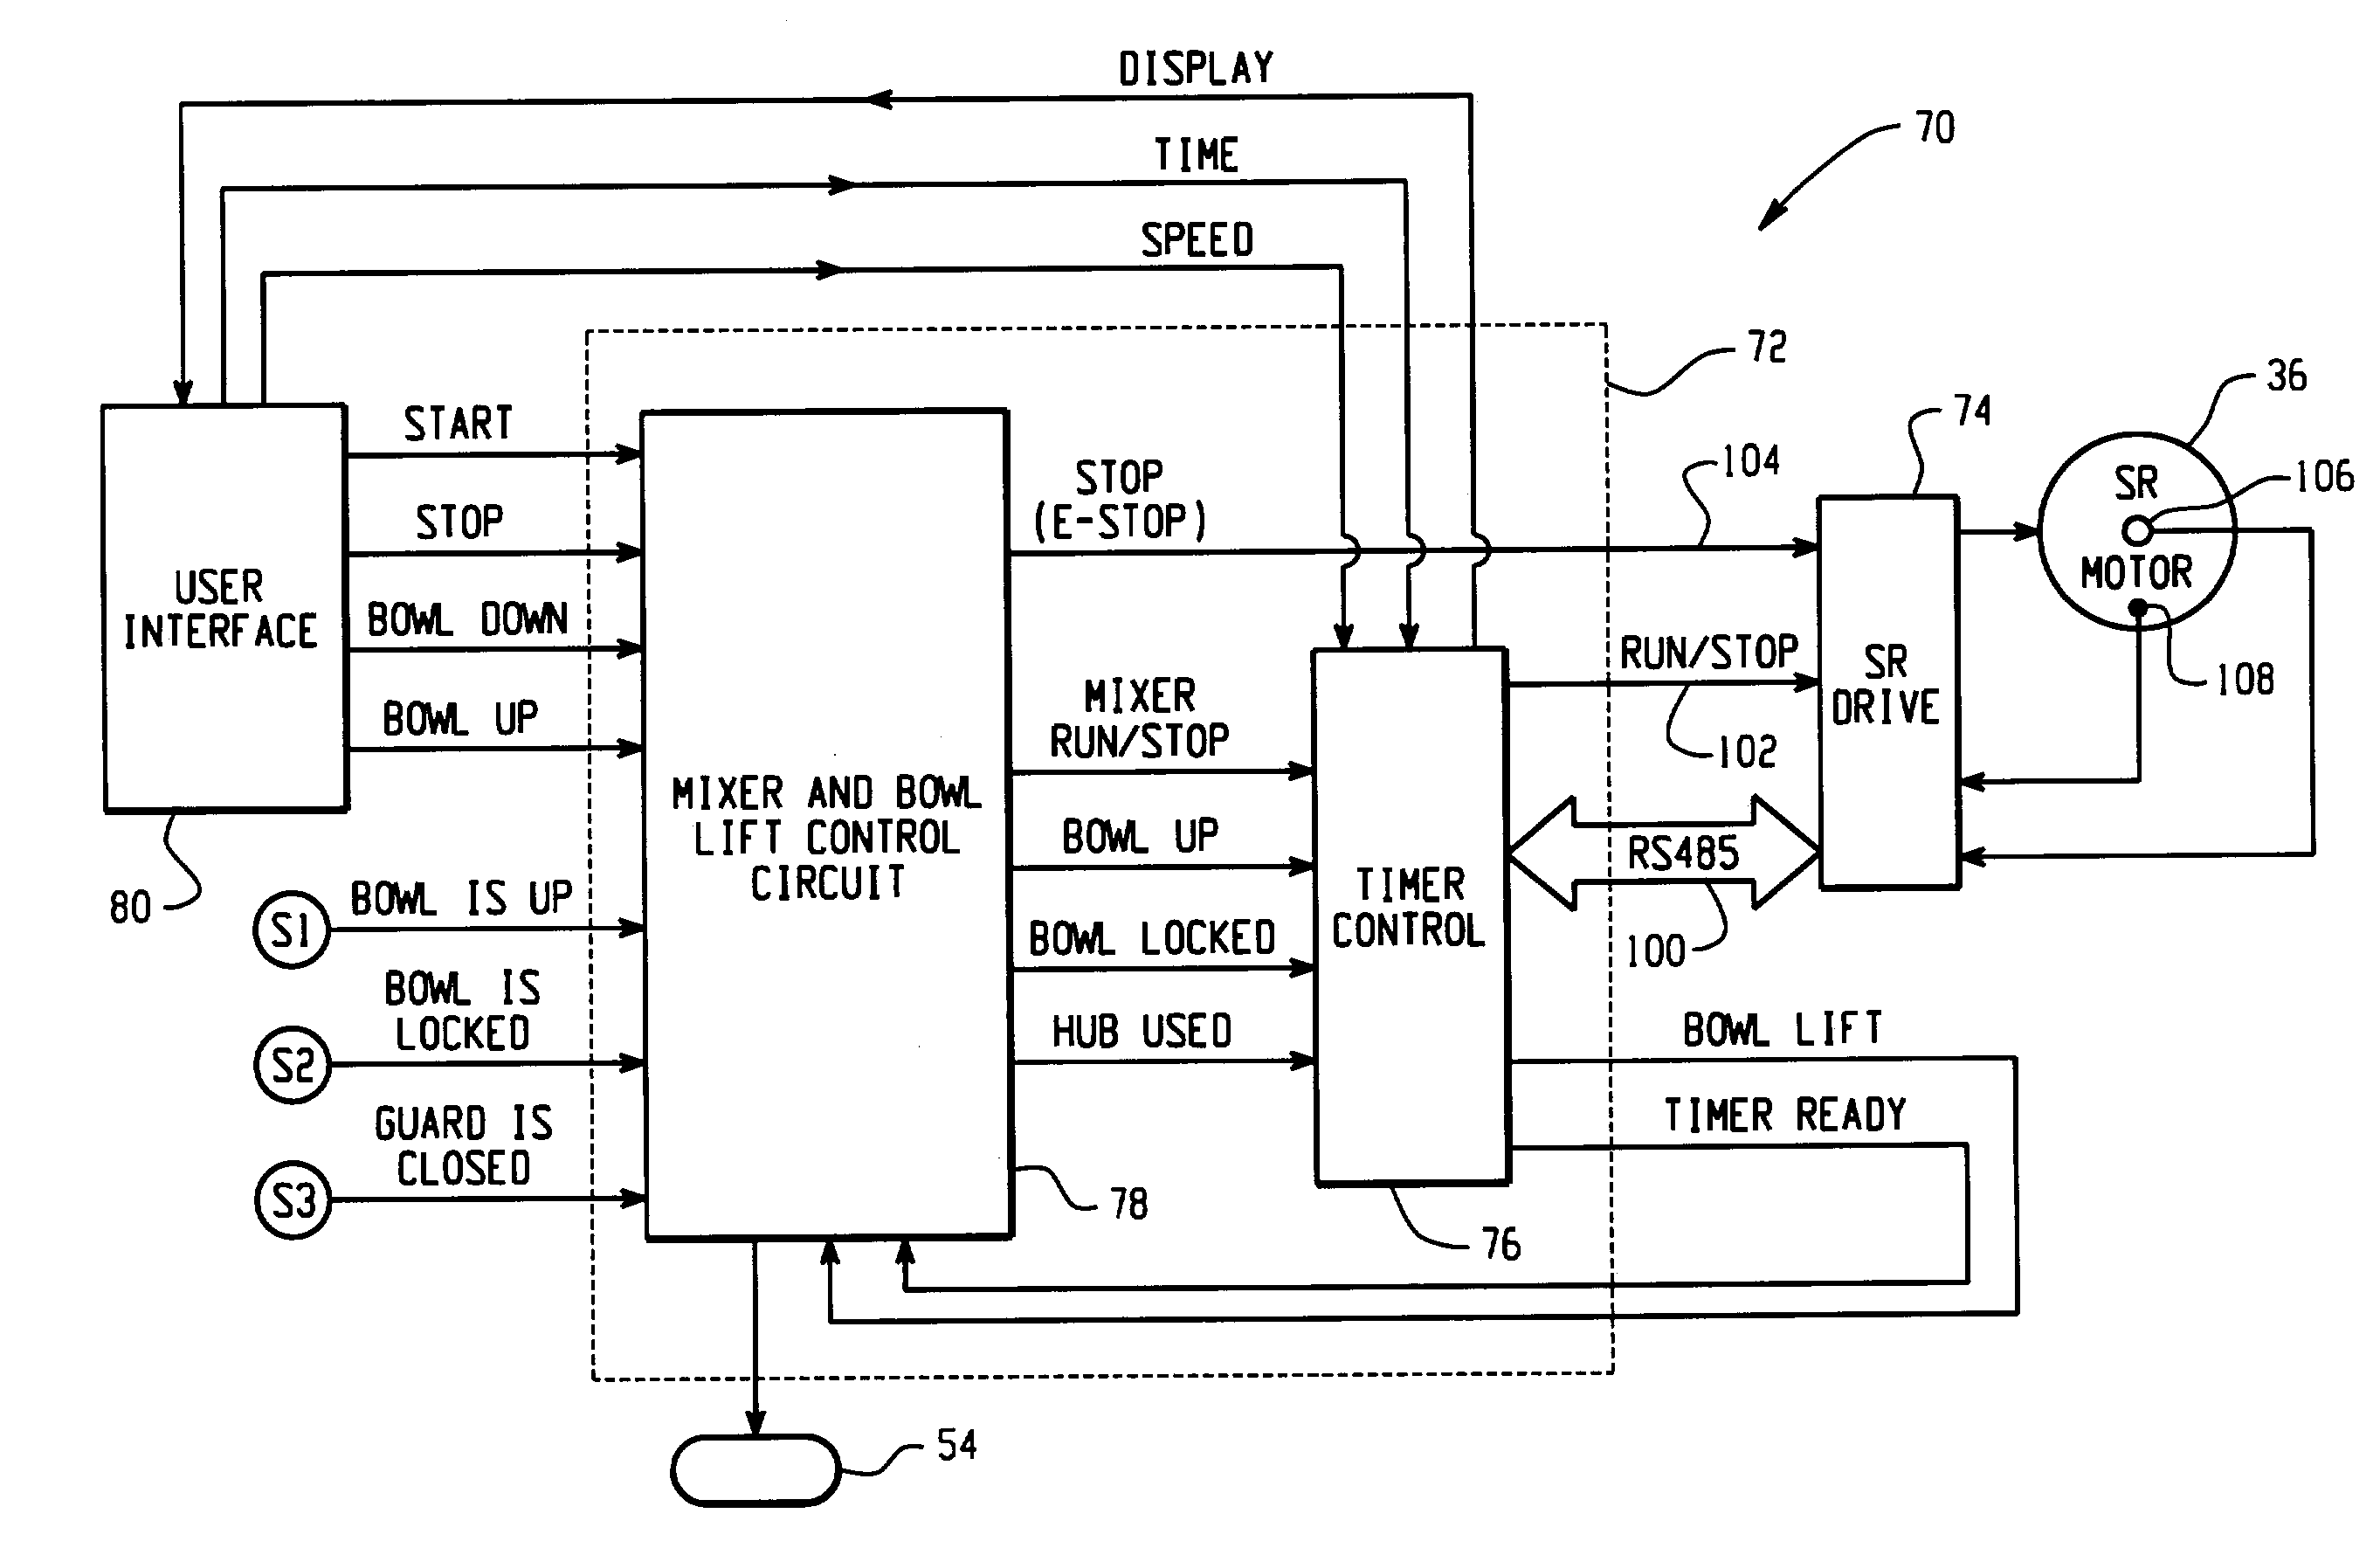 Hobart Mixer Wiring Diagram Wiring Diagram